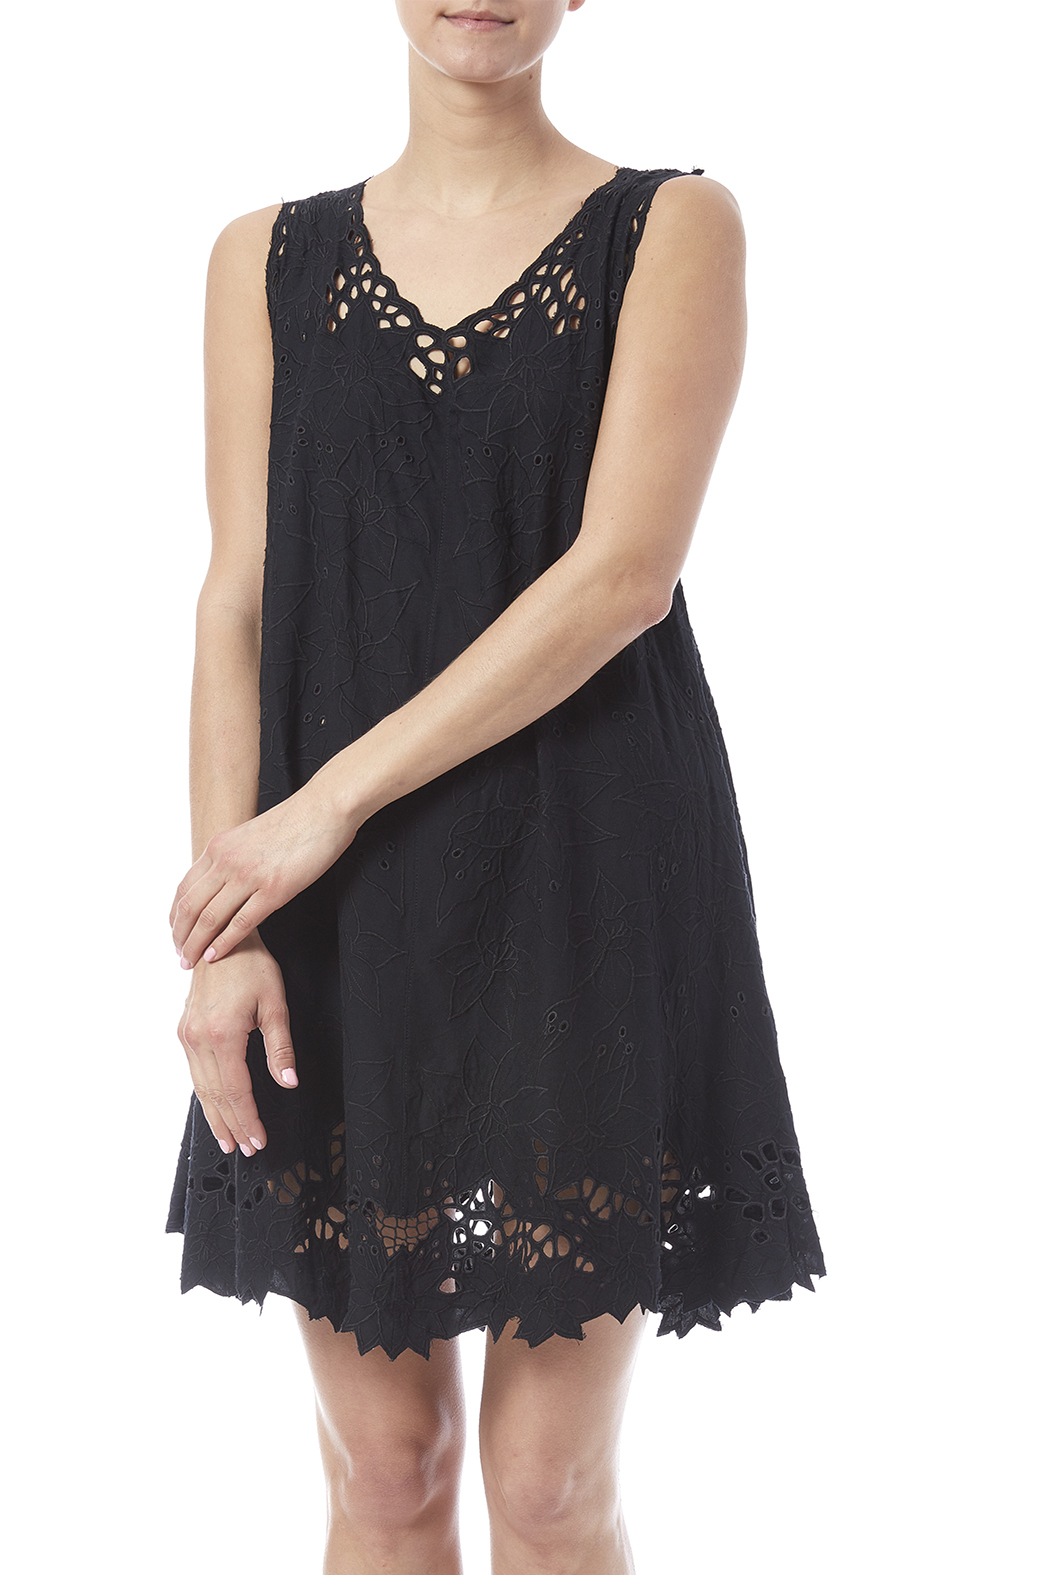 Dancing Gecko Eyelet Lace Dress - Front Cropped Image